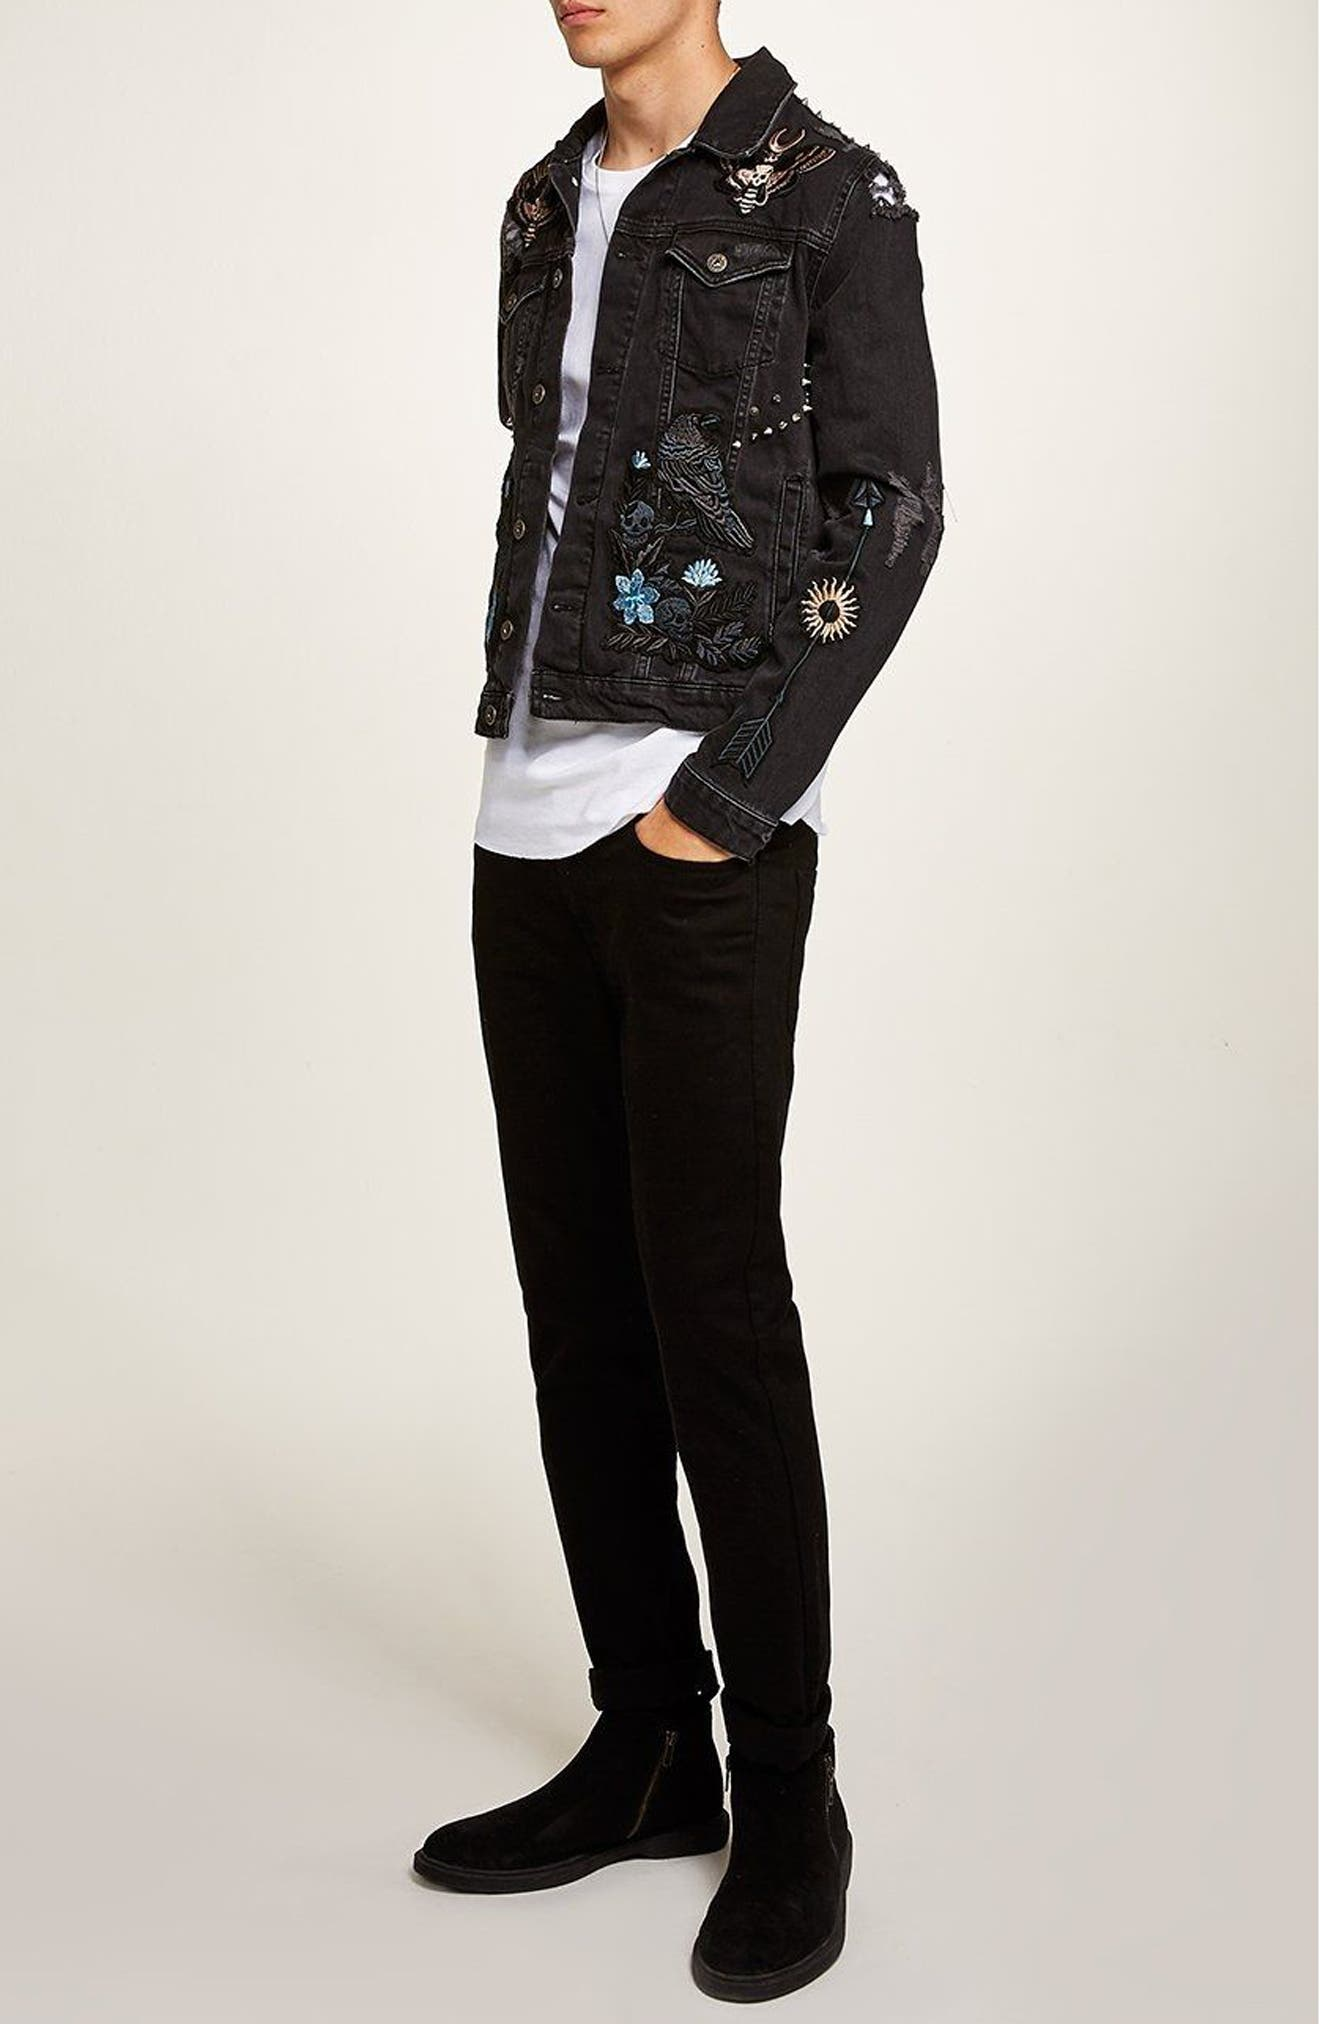 Sleepy Hollow Slim Fit Denim Jacket with Patches,                             Alternate thumbnail 5, color,                             001